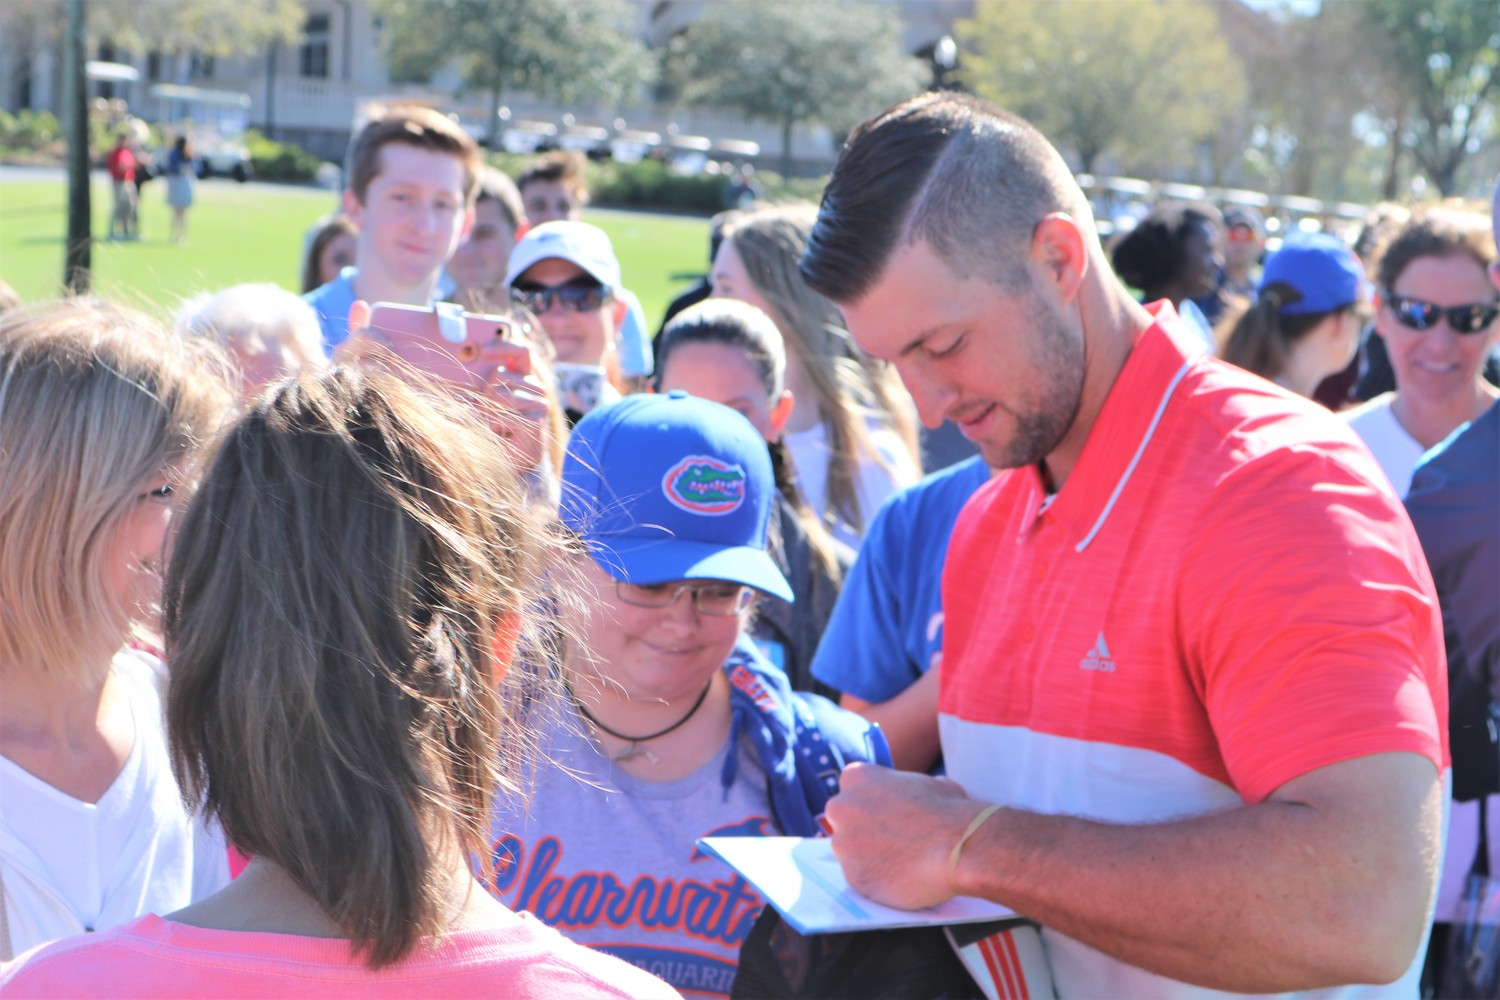 Tim Tebow signs autographs before the start of the tournament.